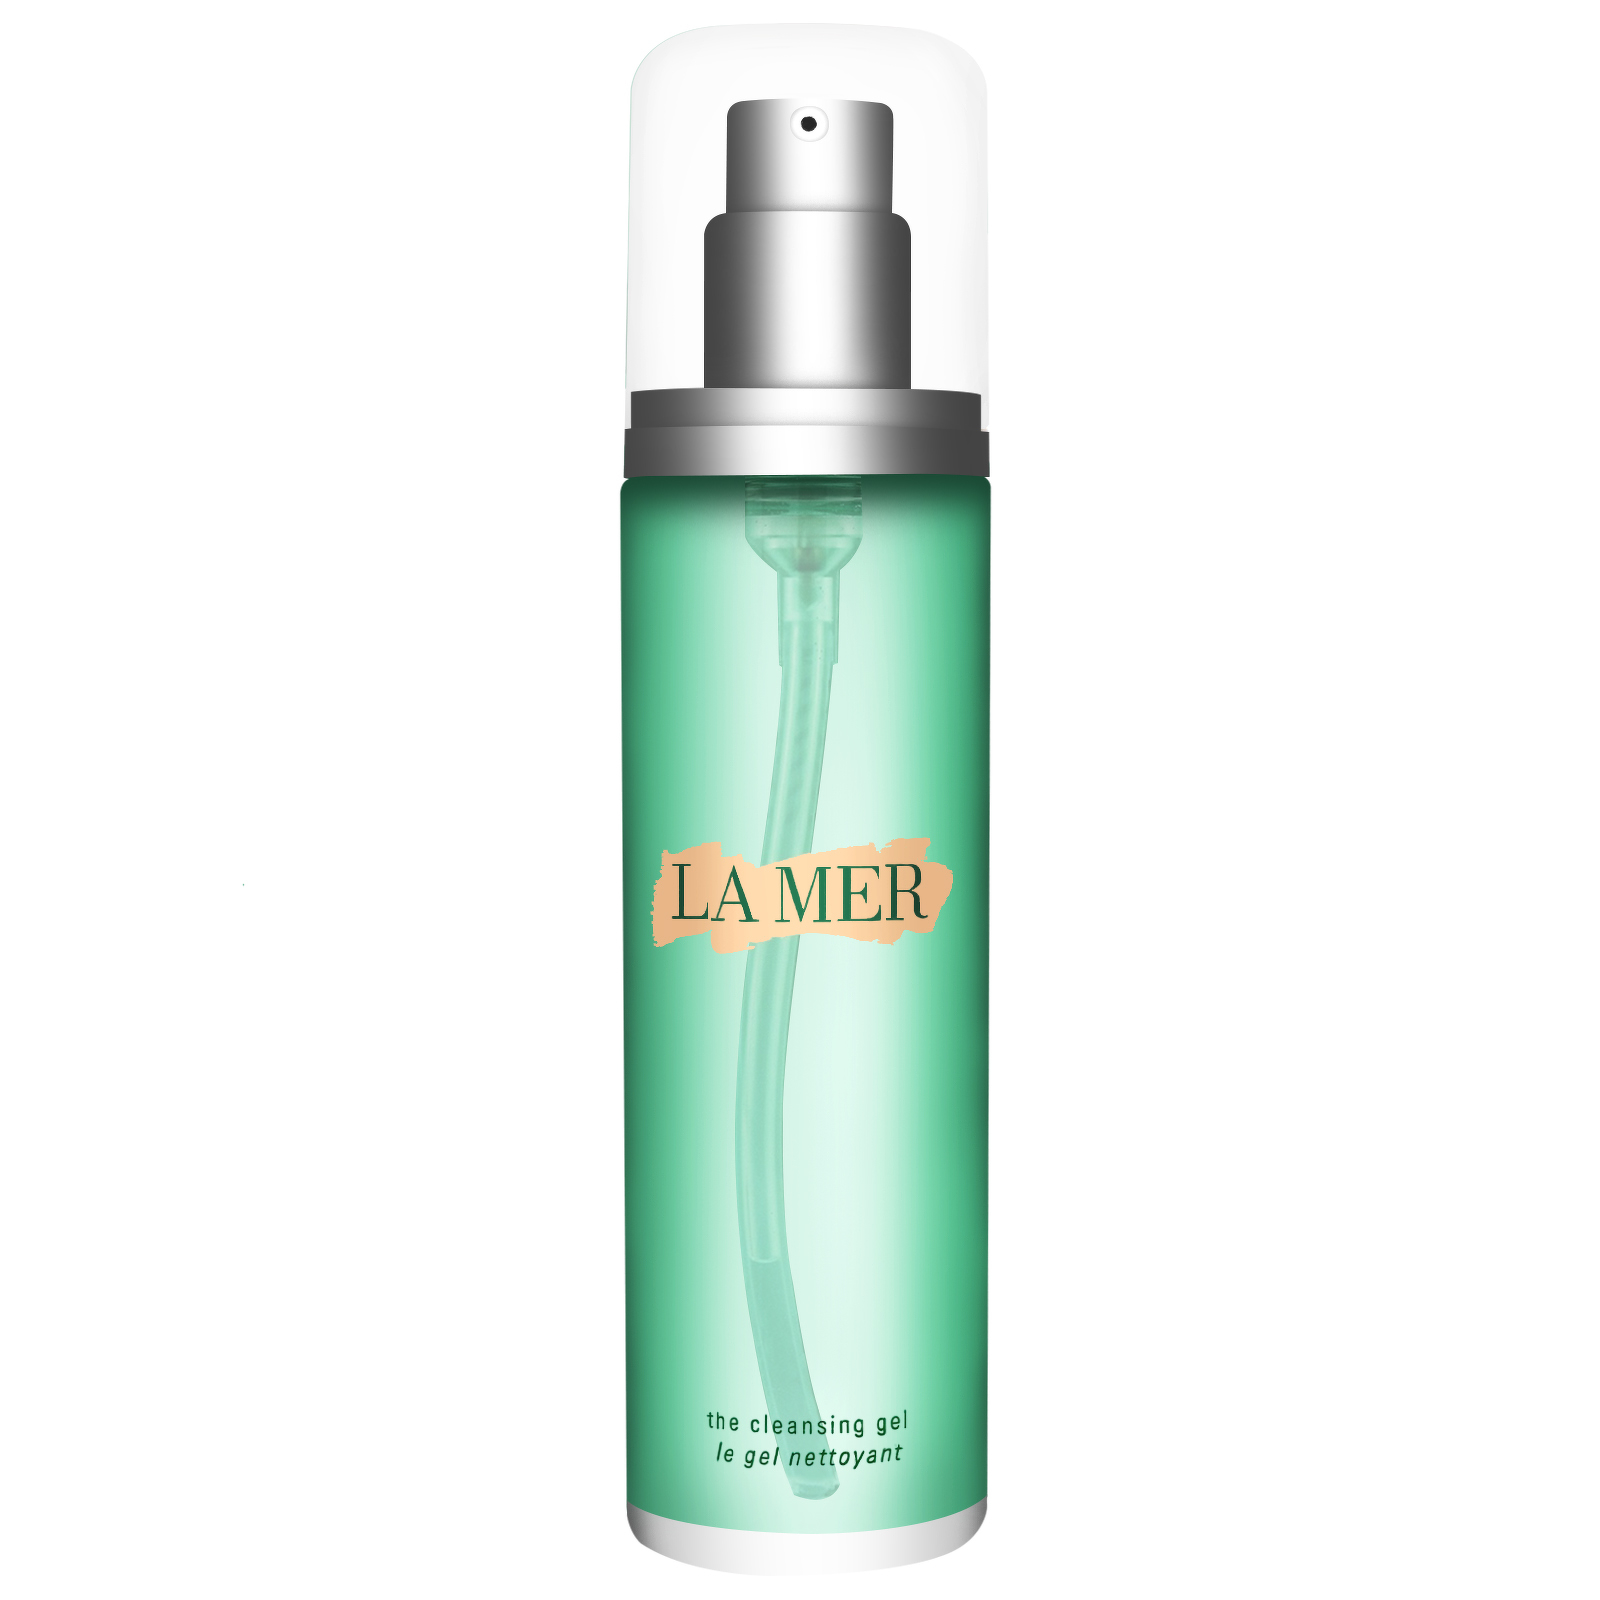 LA MER Cleansers The Cleansing Gel 200ml